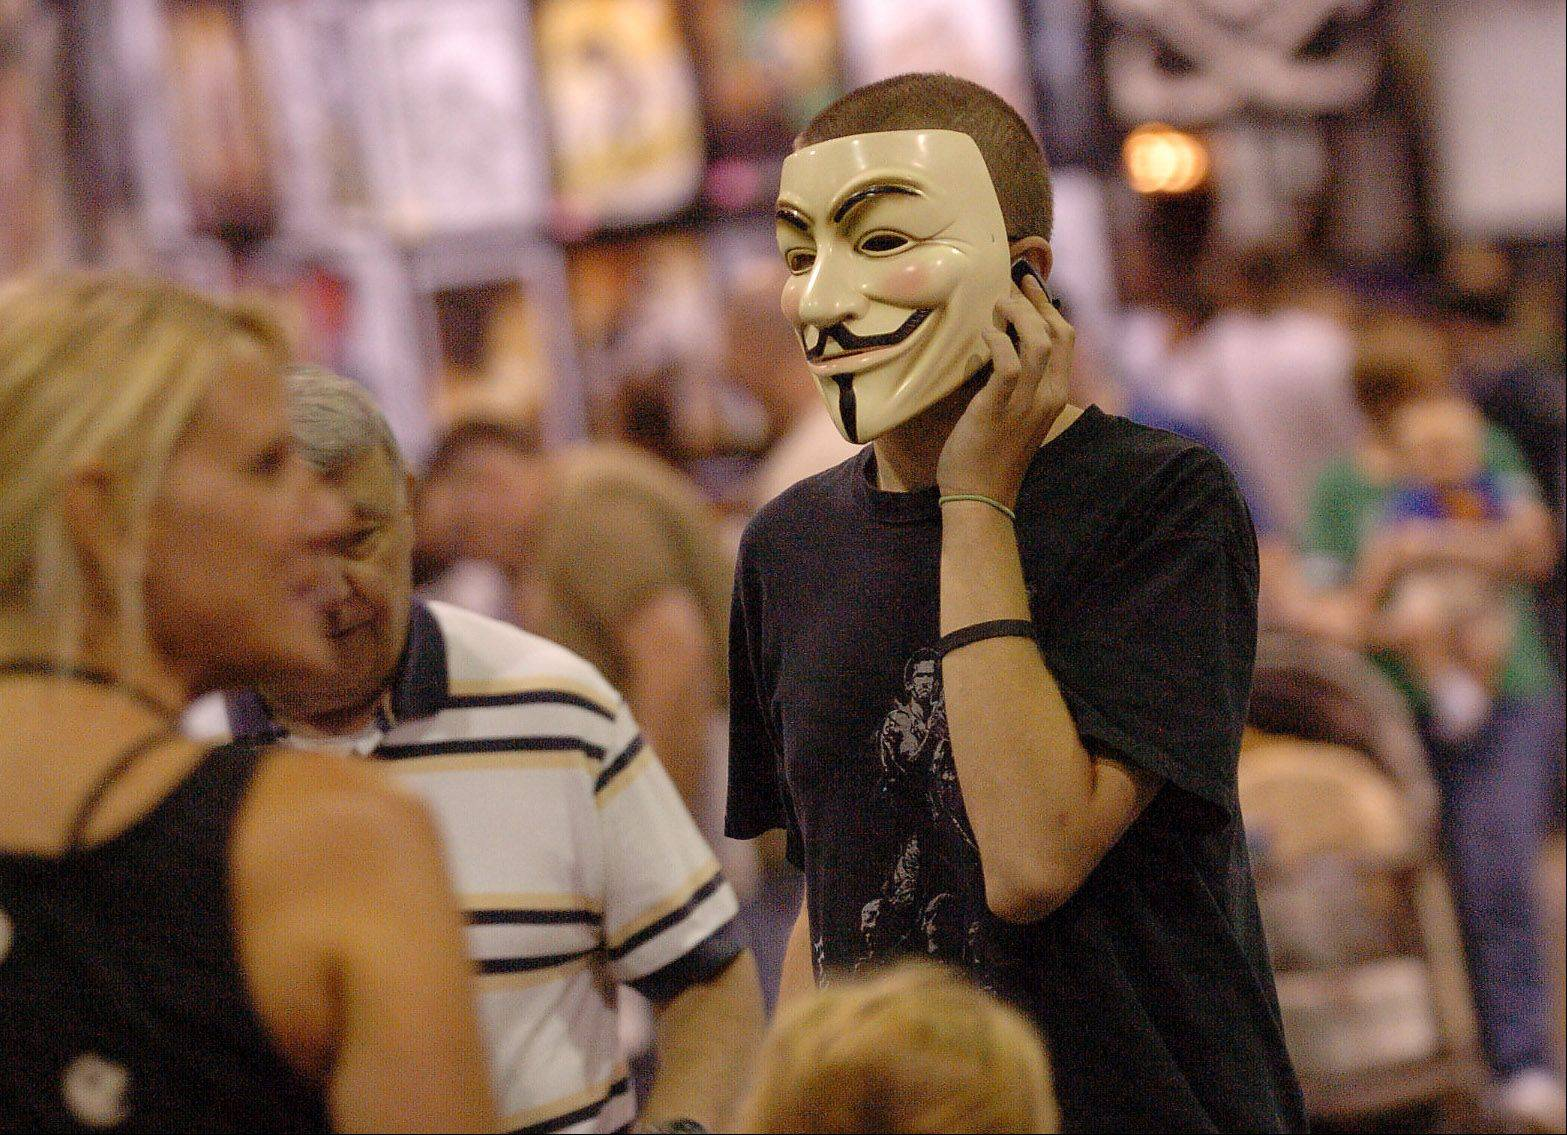 Alek Miser of Wheaton, on his cellphone while wearing a Guy Fawkes mask from the comic book V for Vendetta at the Wizard World Chicago Comic Con.